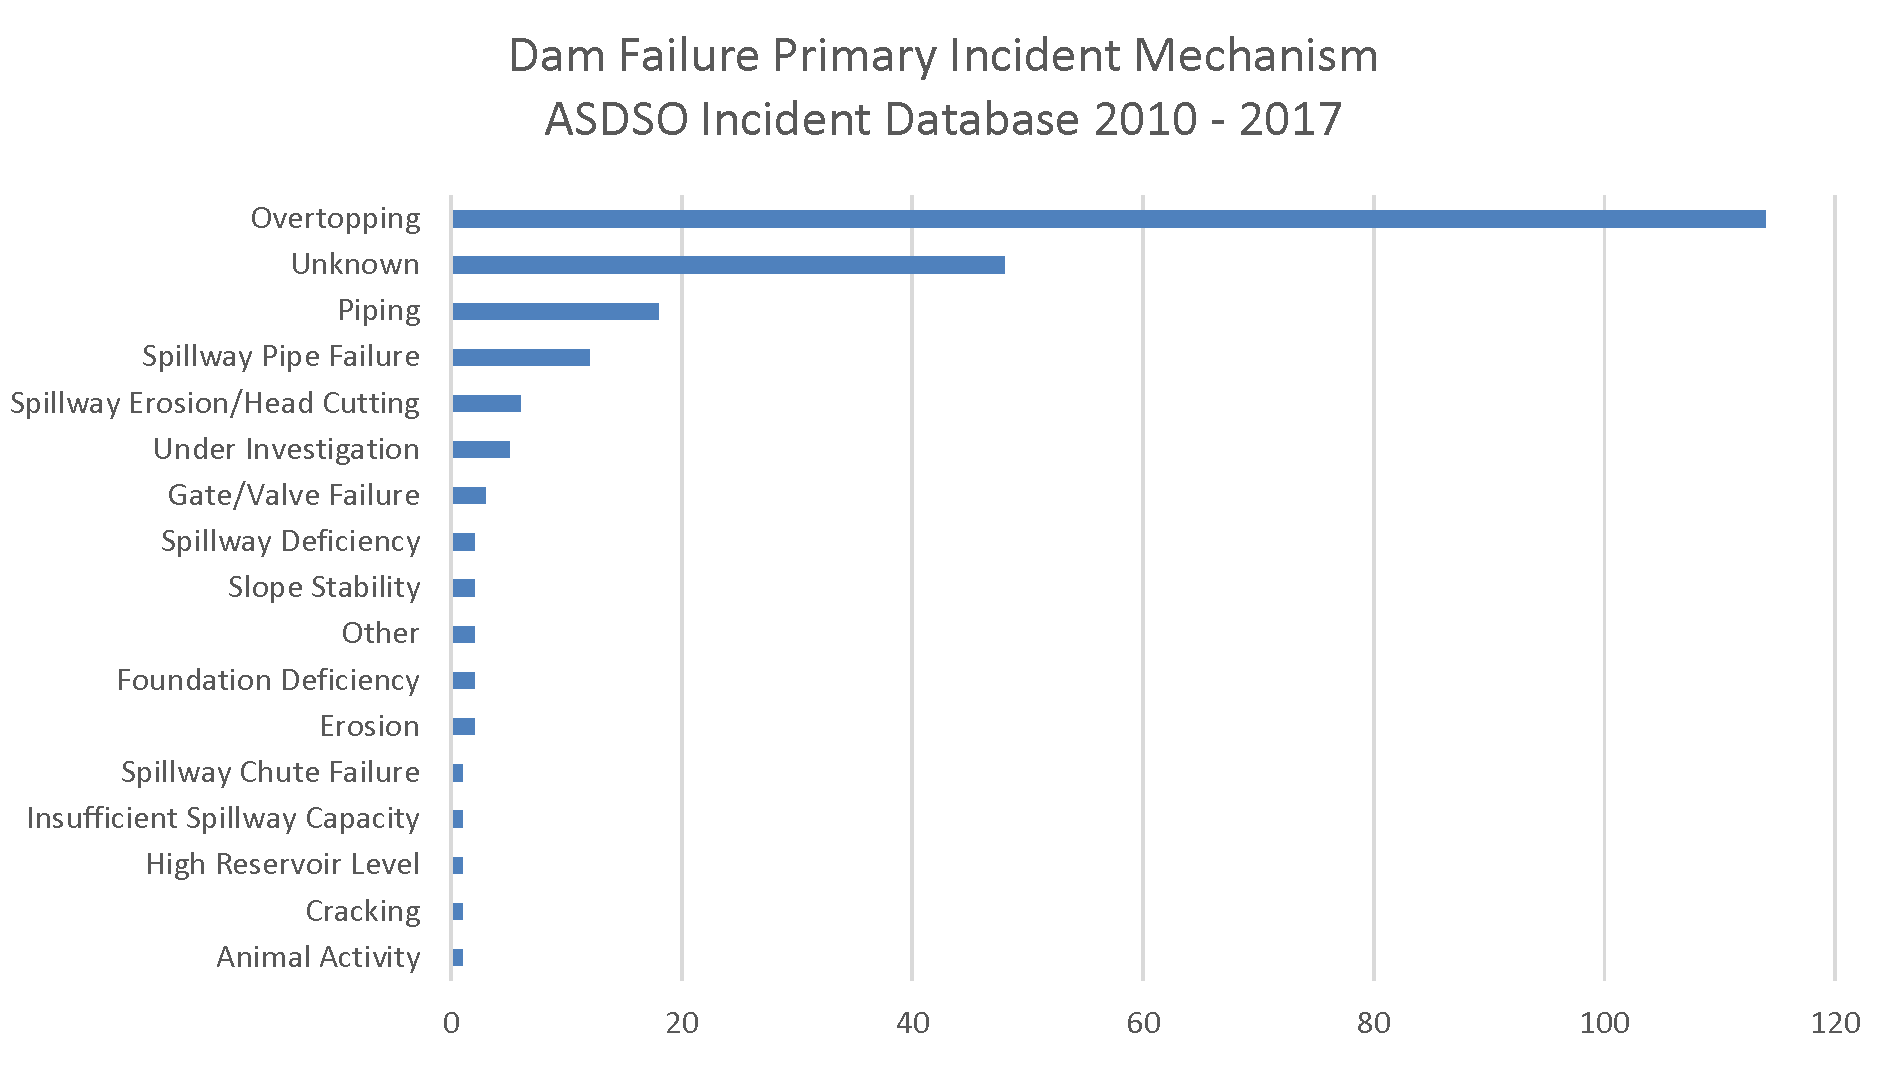 Dam Failure Primary Incident Mechanism 10-17.png